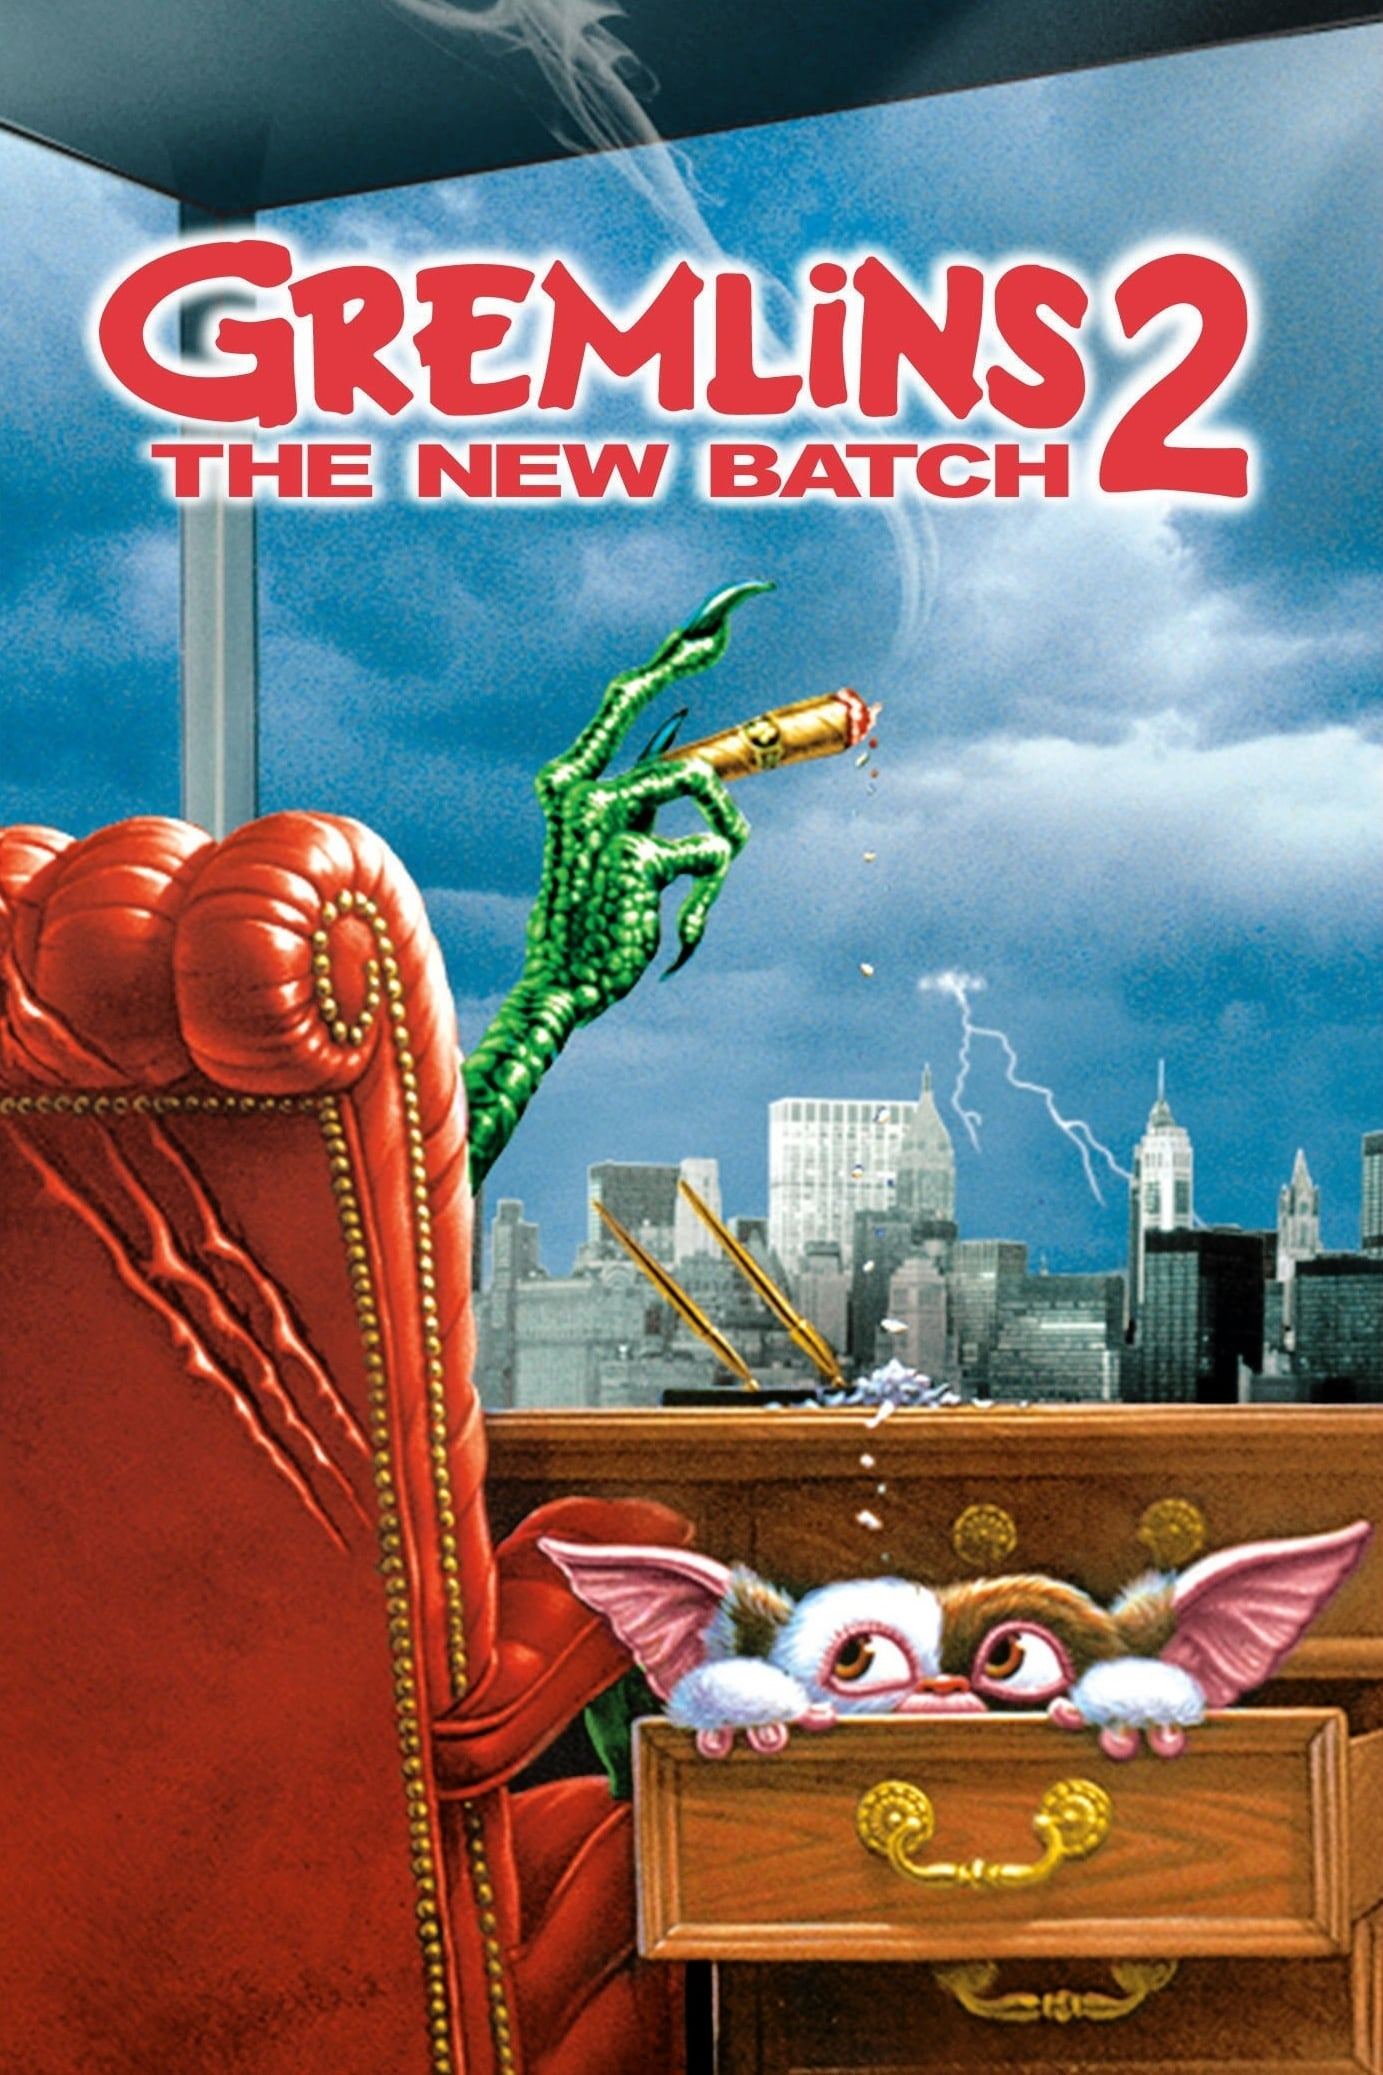 Image Gremlins 2: The New Batch